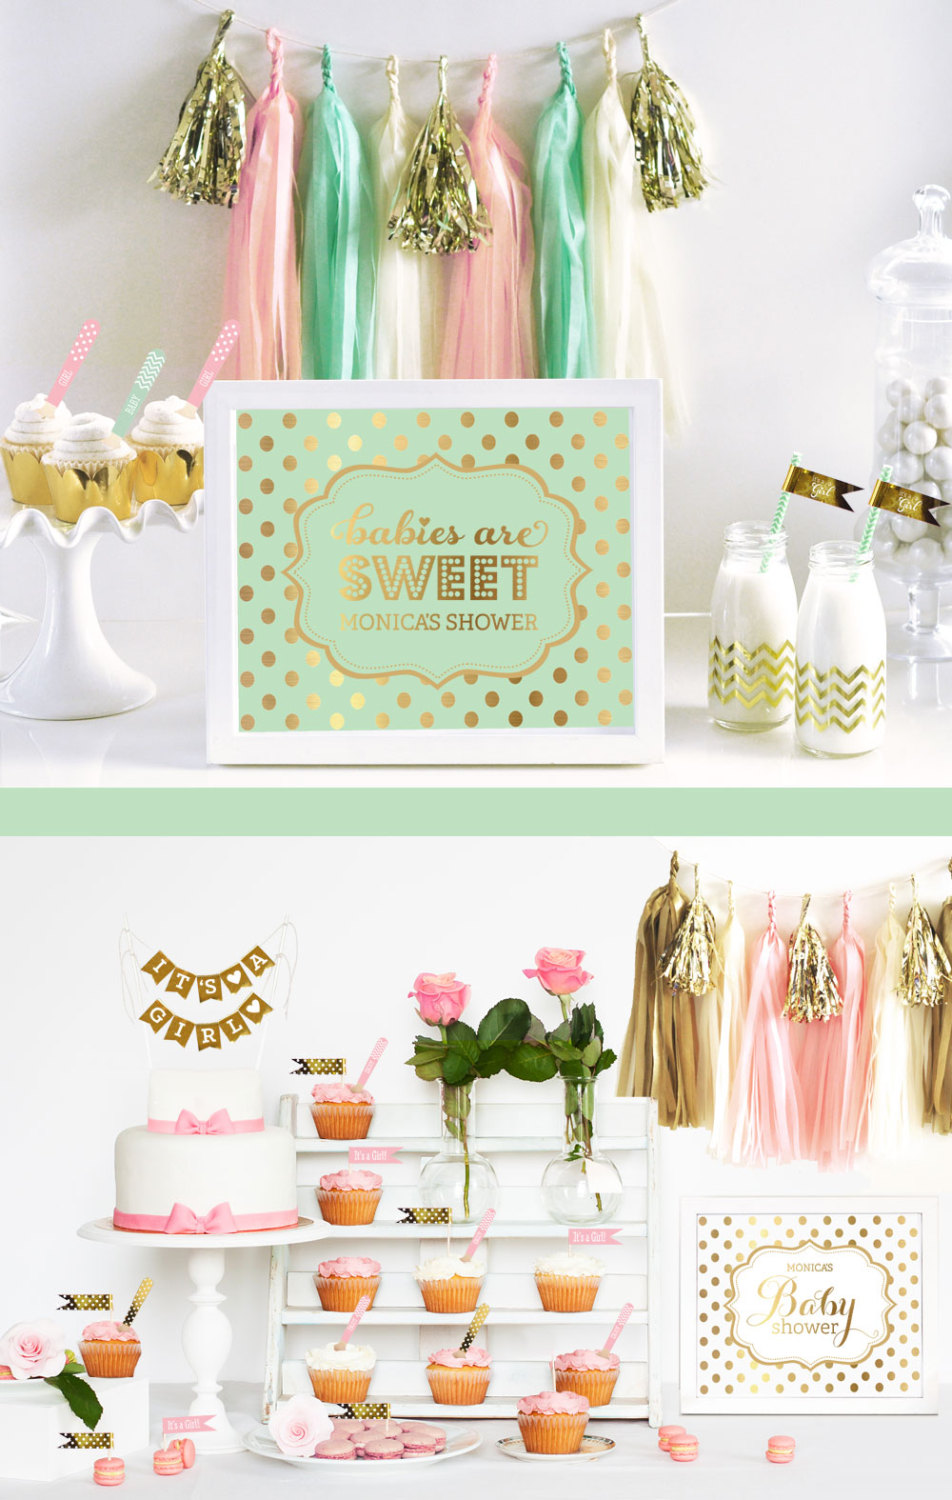 Gender Neutral Baby Shower Ideas | wblqual.com